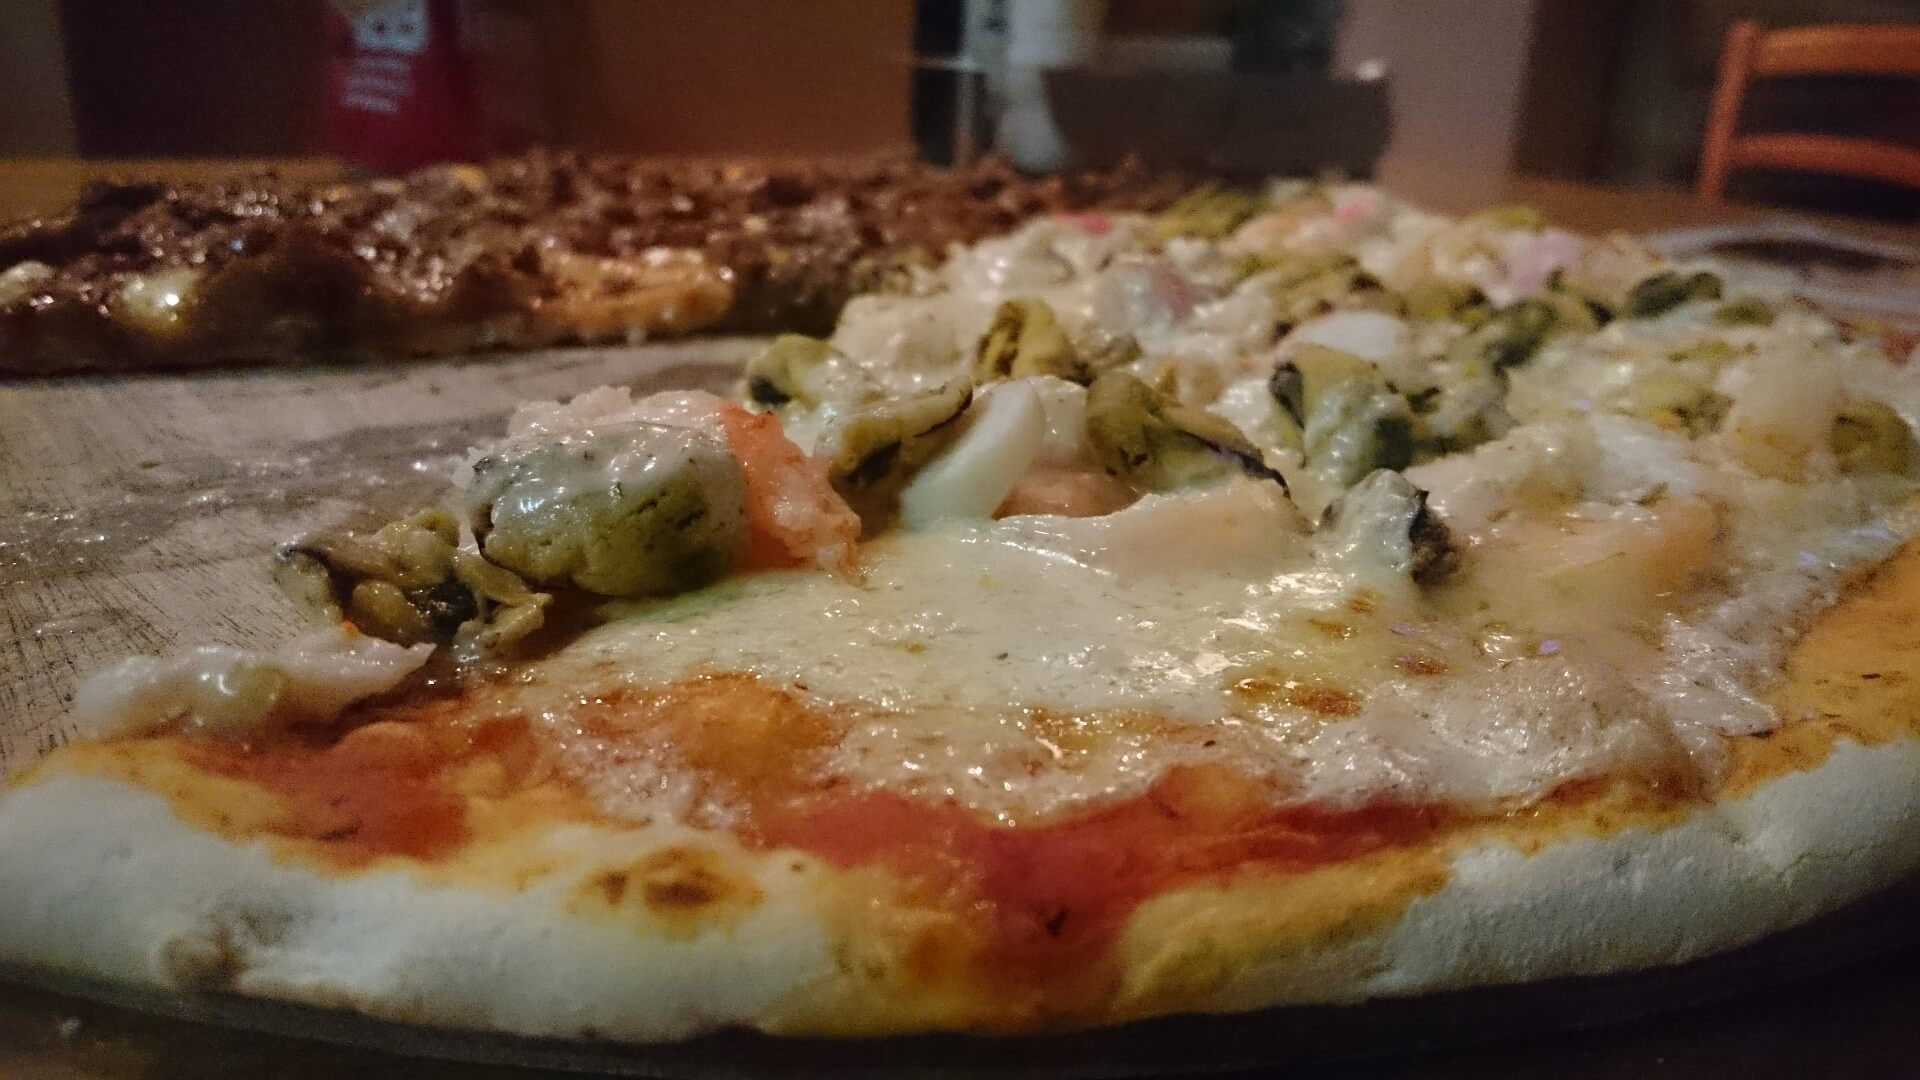 Seafood and Rib Pizza - Meal - Food - Cape Town - Claremont